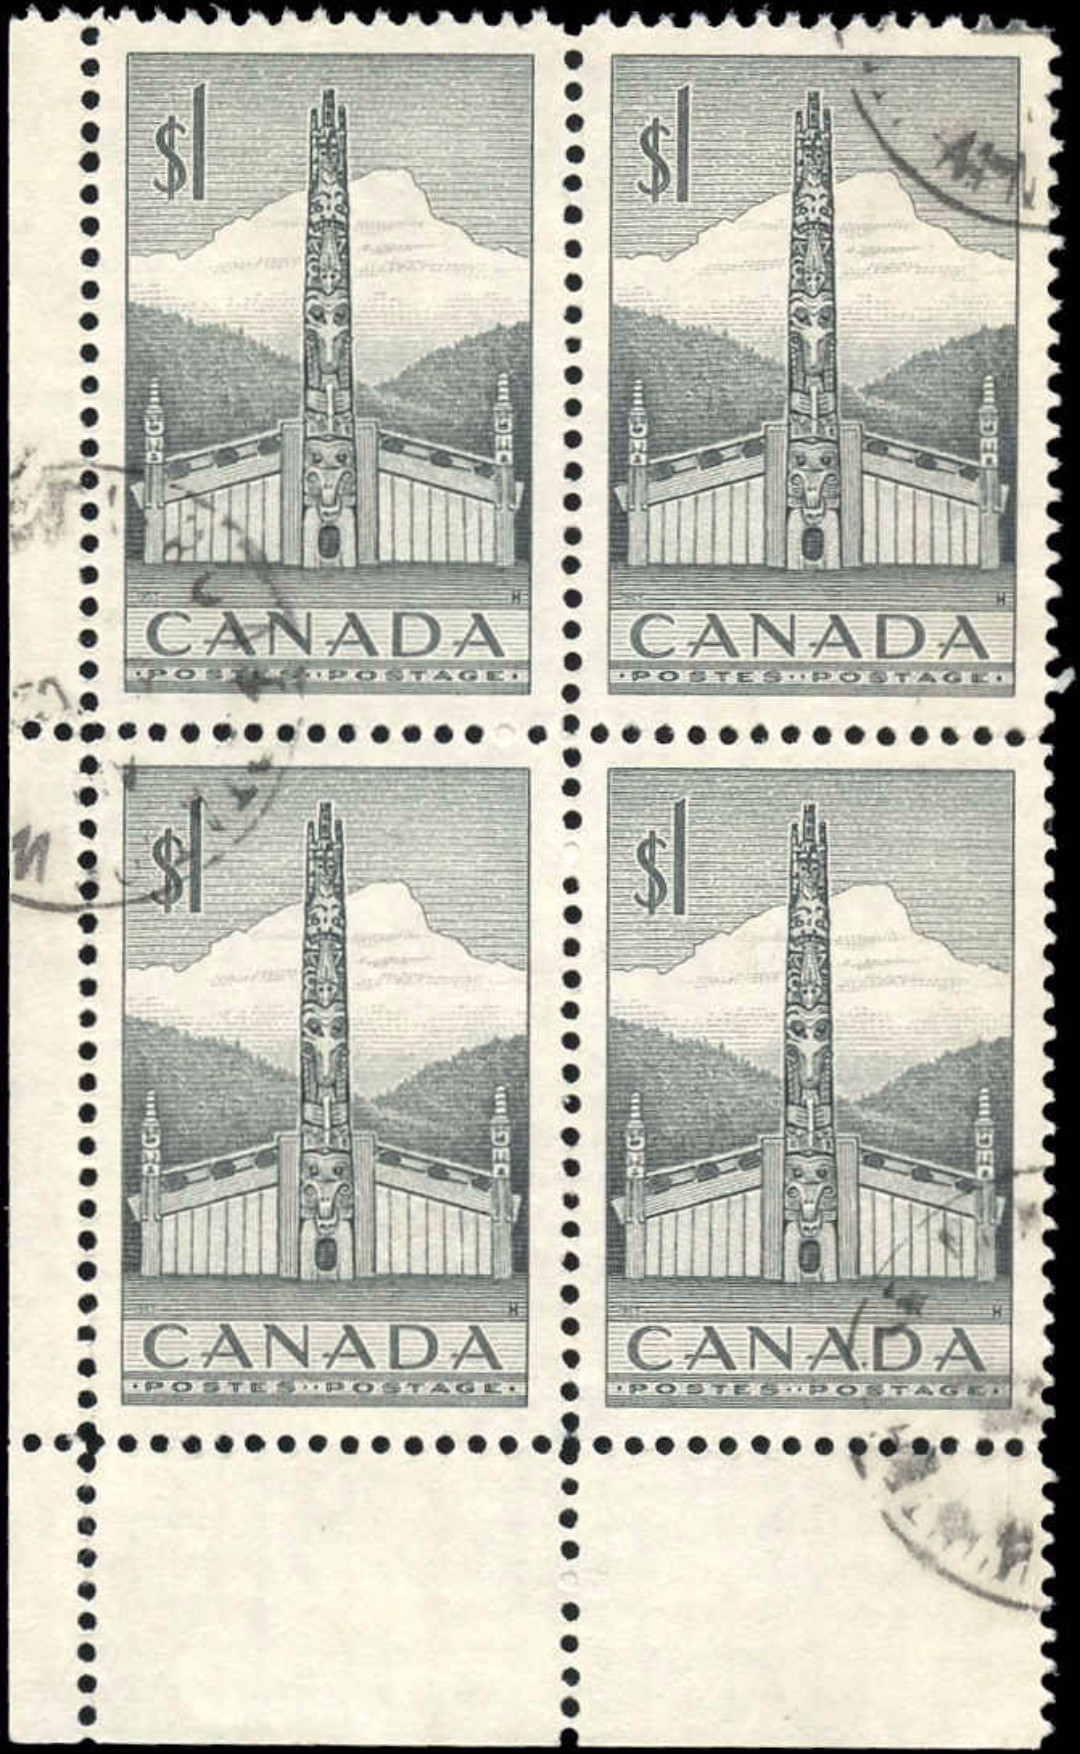 Canada #321, Totem Pole Issue, VF, Used